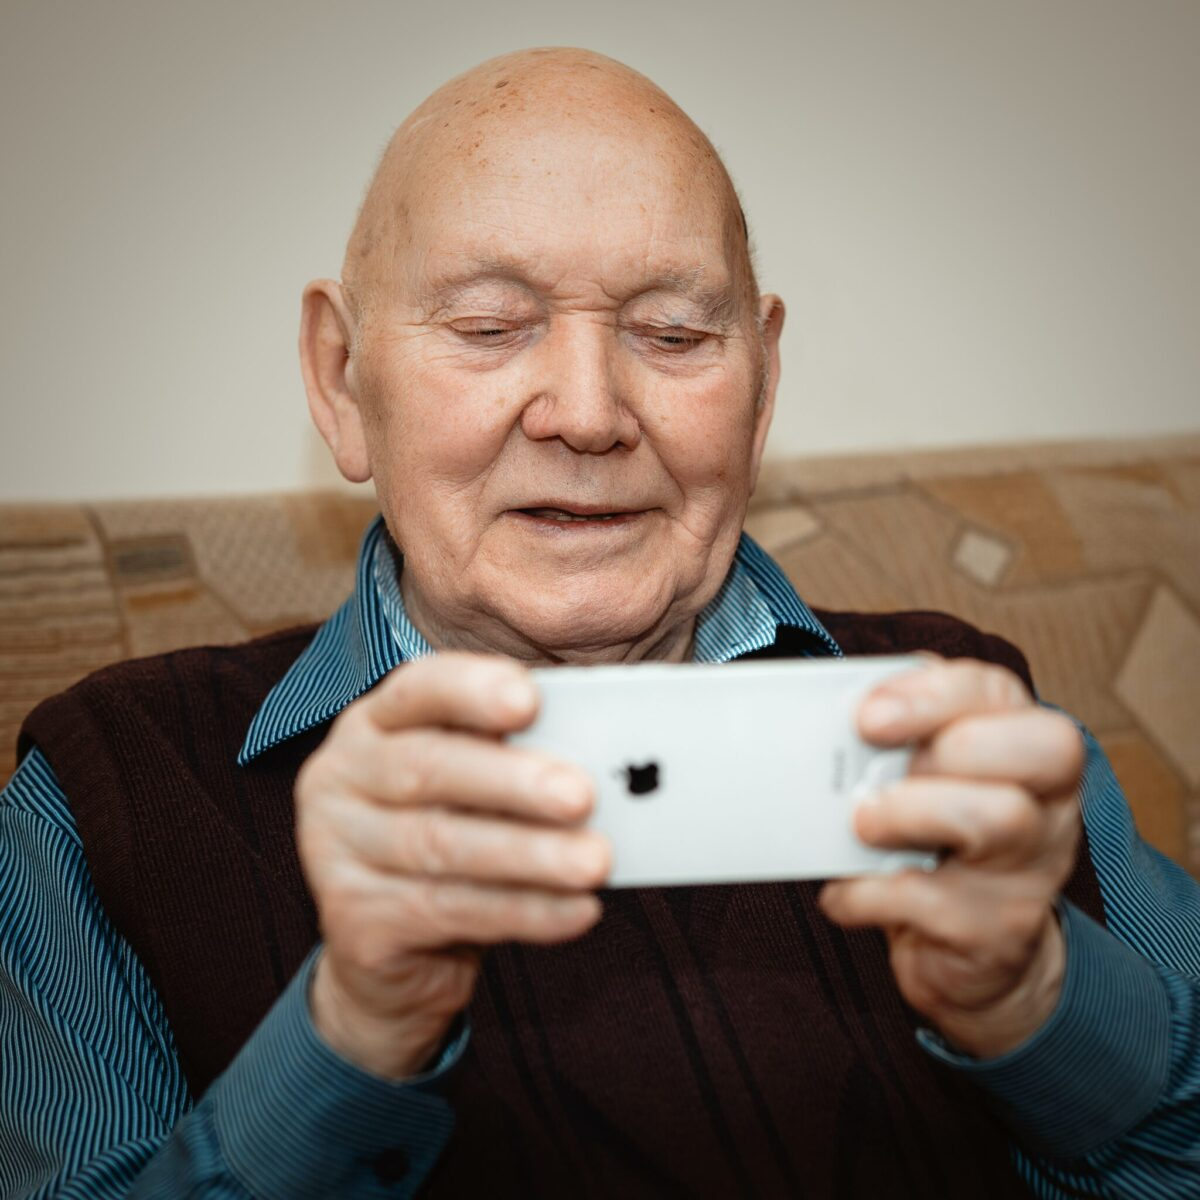 Approaches for Helping Seniors Navigate Technology